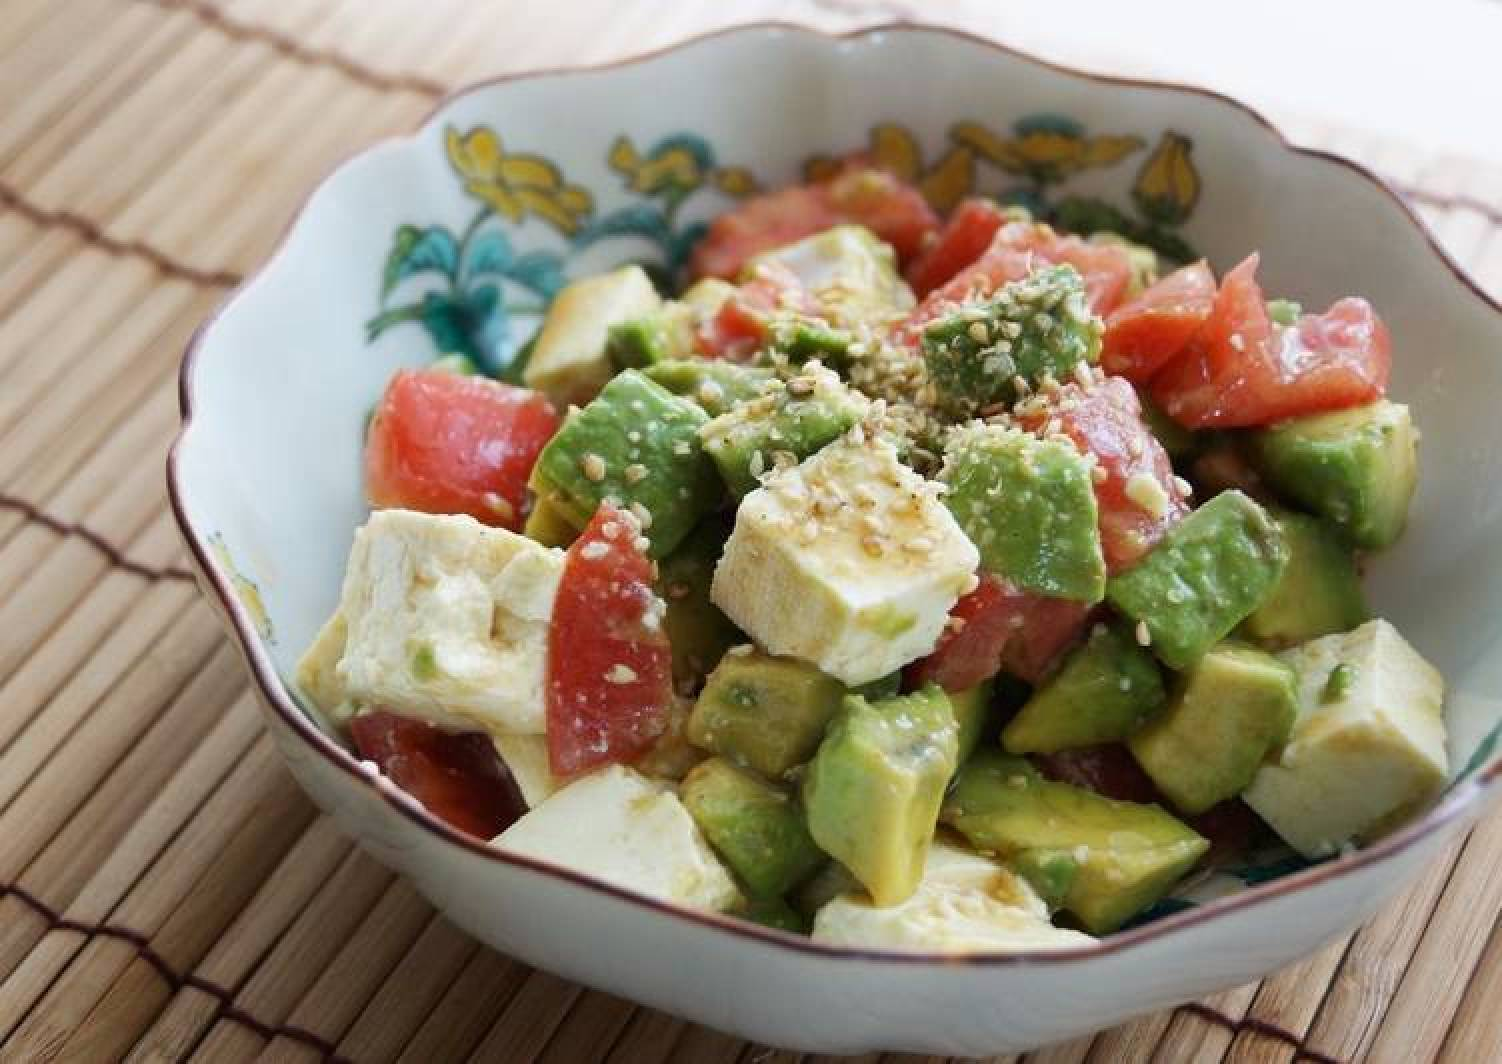 Tofu, Avocado and Tomato Salad